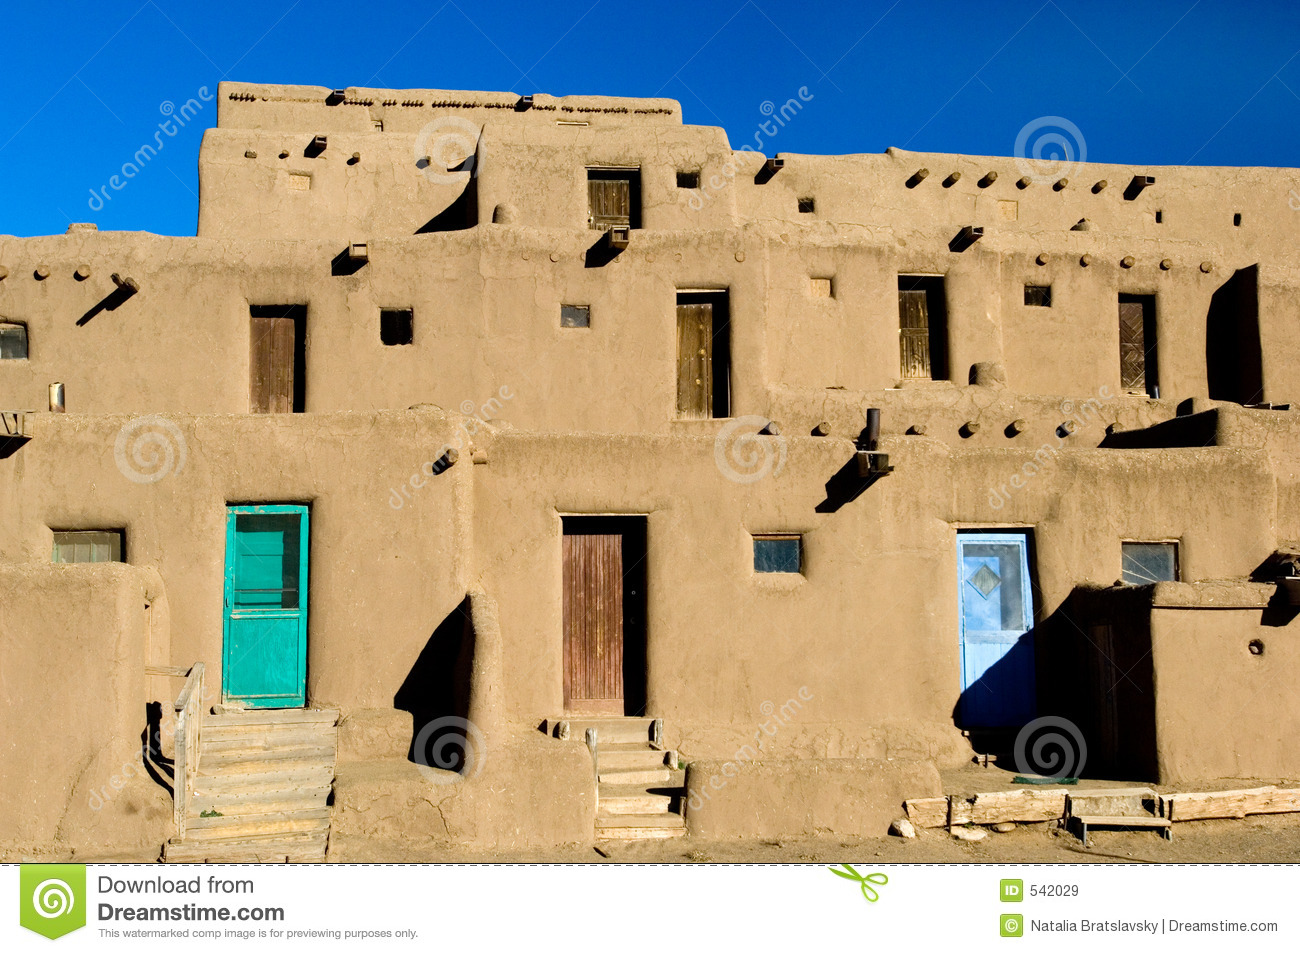 Royalty Free Stock Images Pueblo Village Image542029 on pueblo home plans